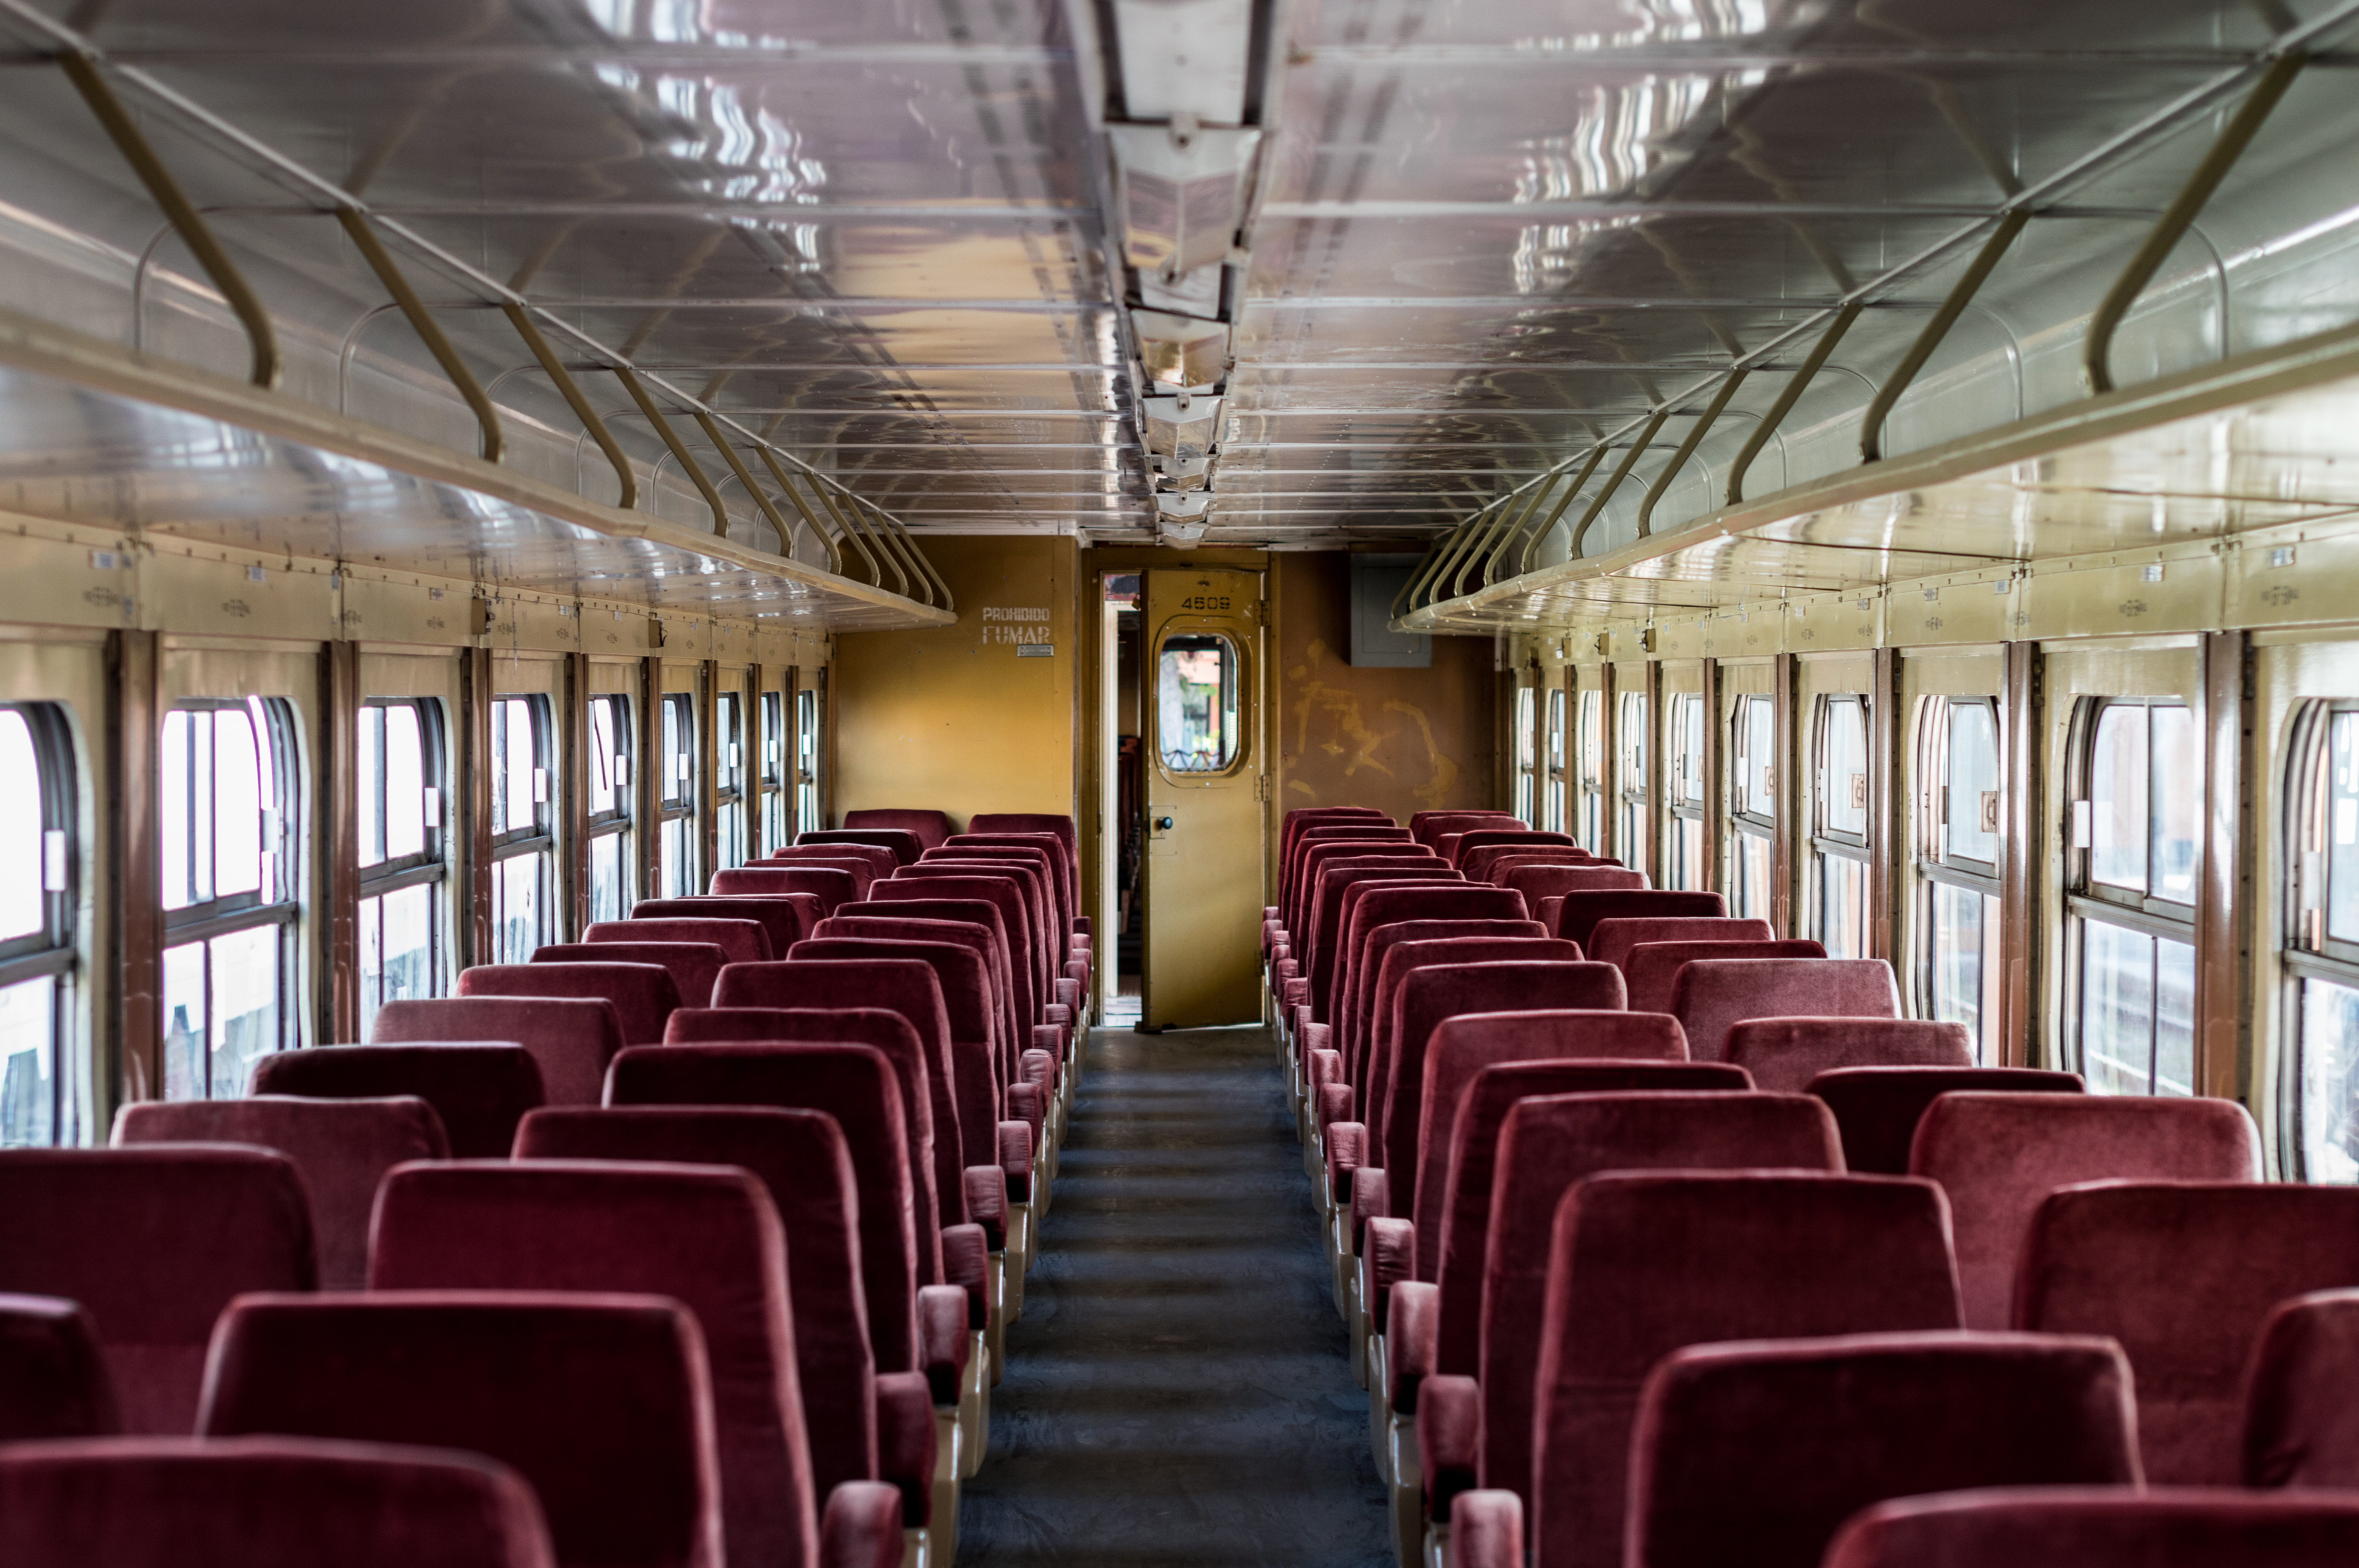 interior of train with red chairs